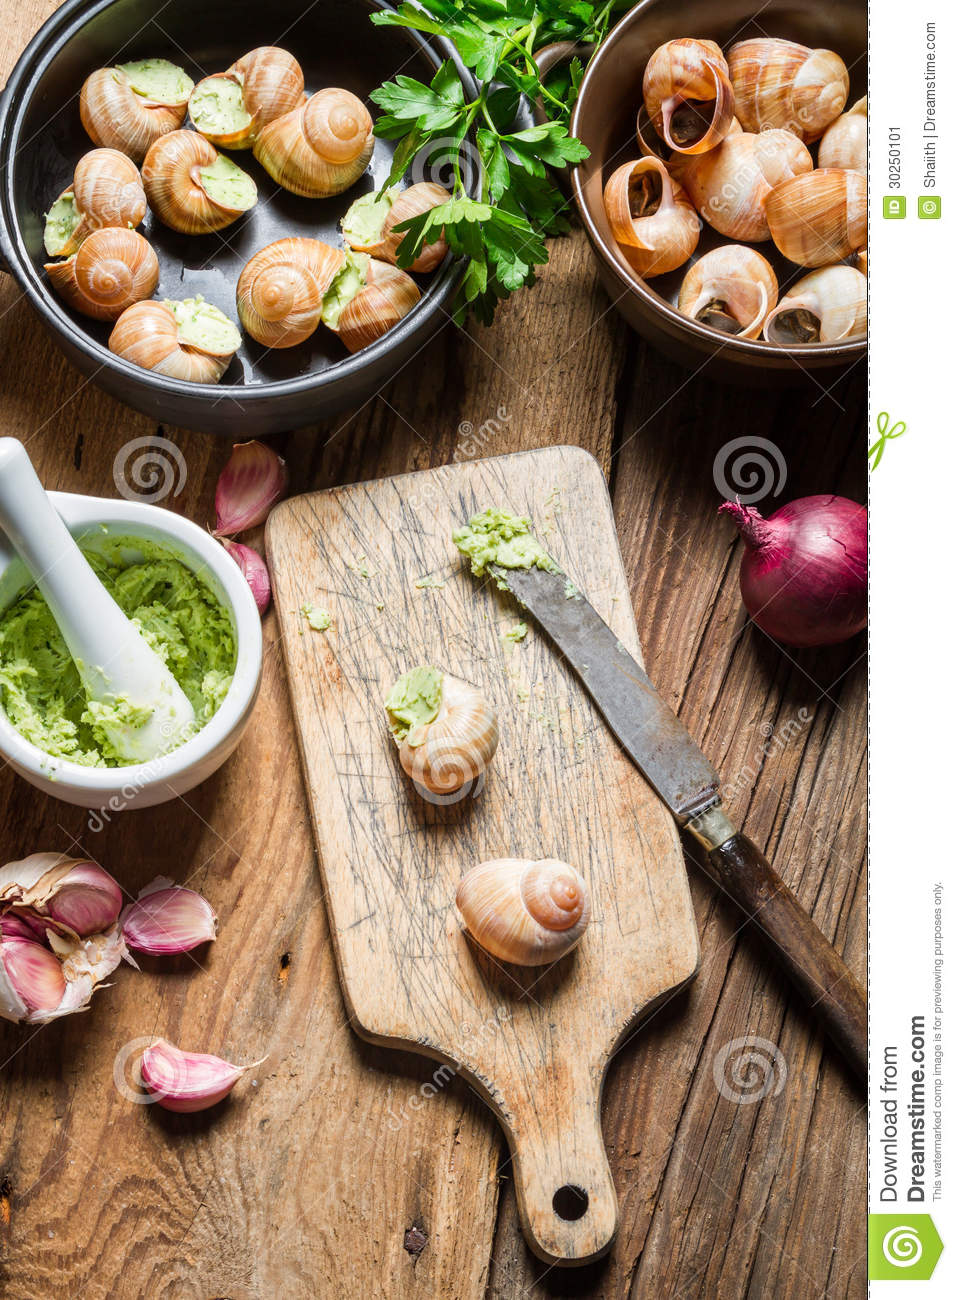 Preparing Snails With Garlic Butter And Herbs Stock Image ...